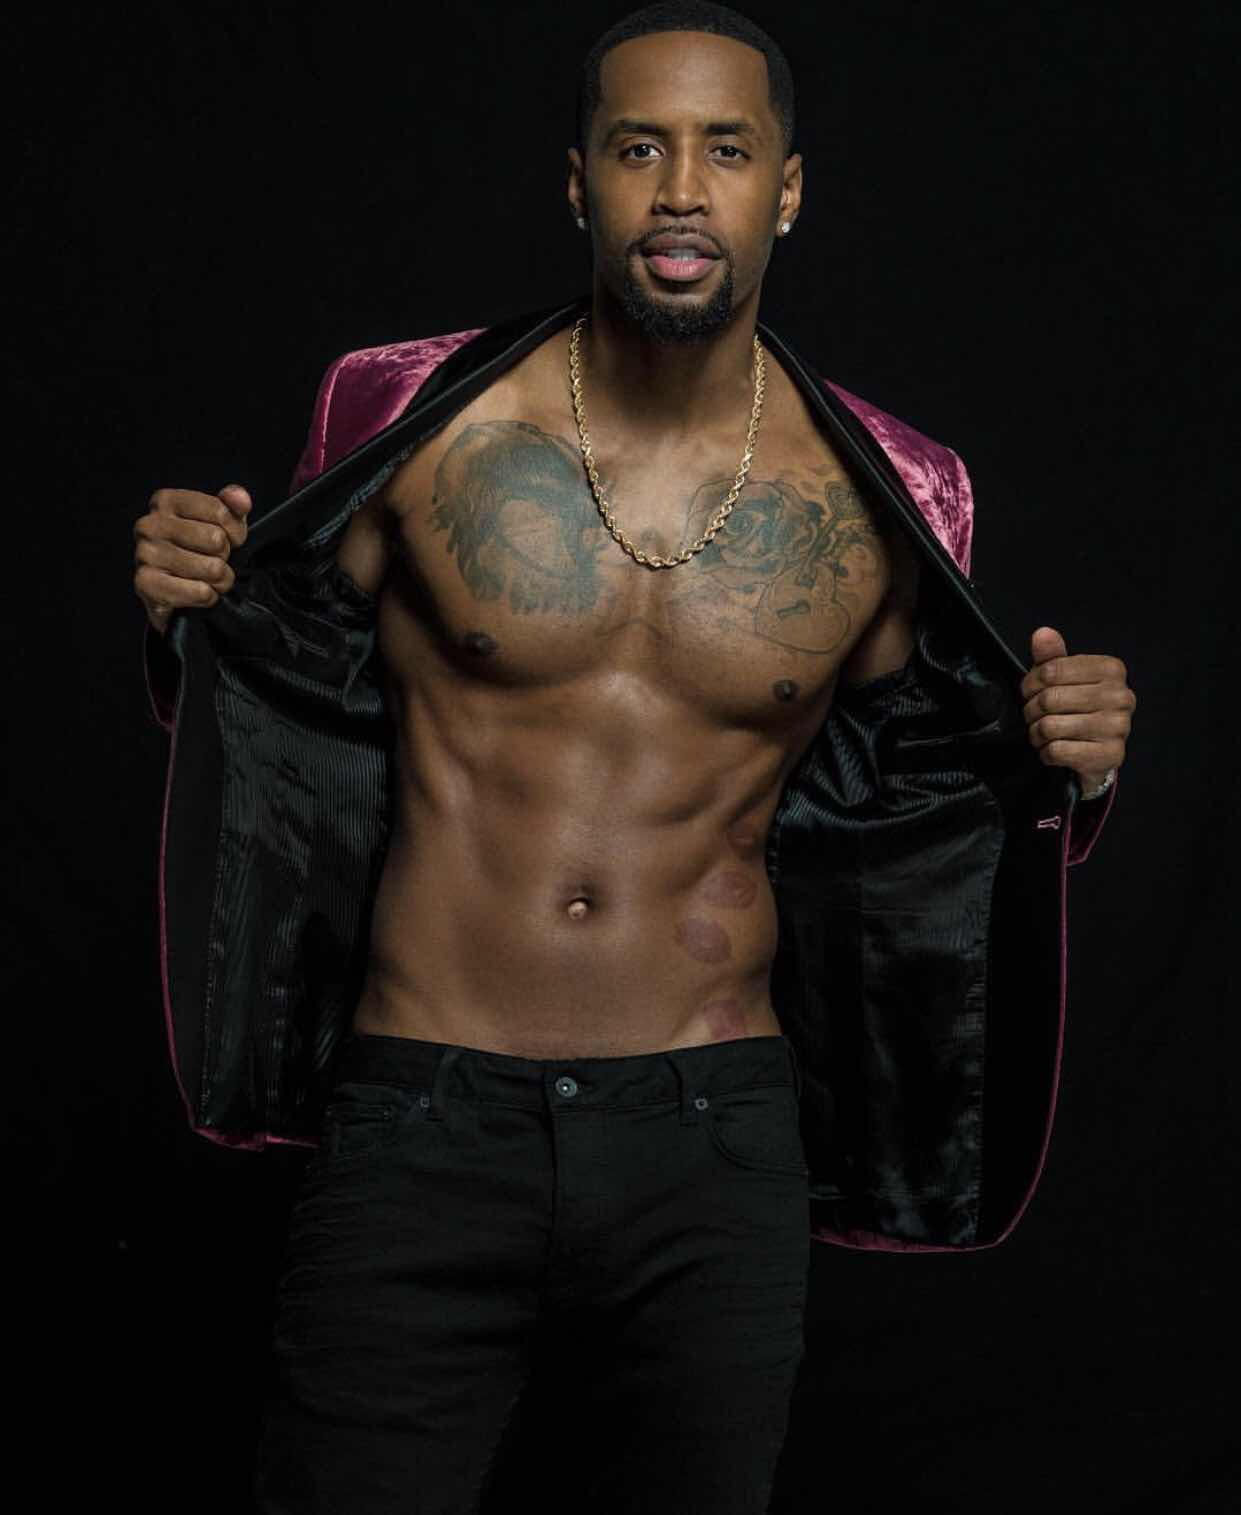 safaree-is-proud-of-his-achievements-and-offers-his-gratitude-for-all-he-has